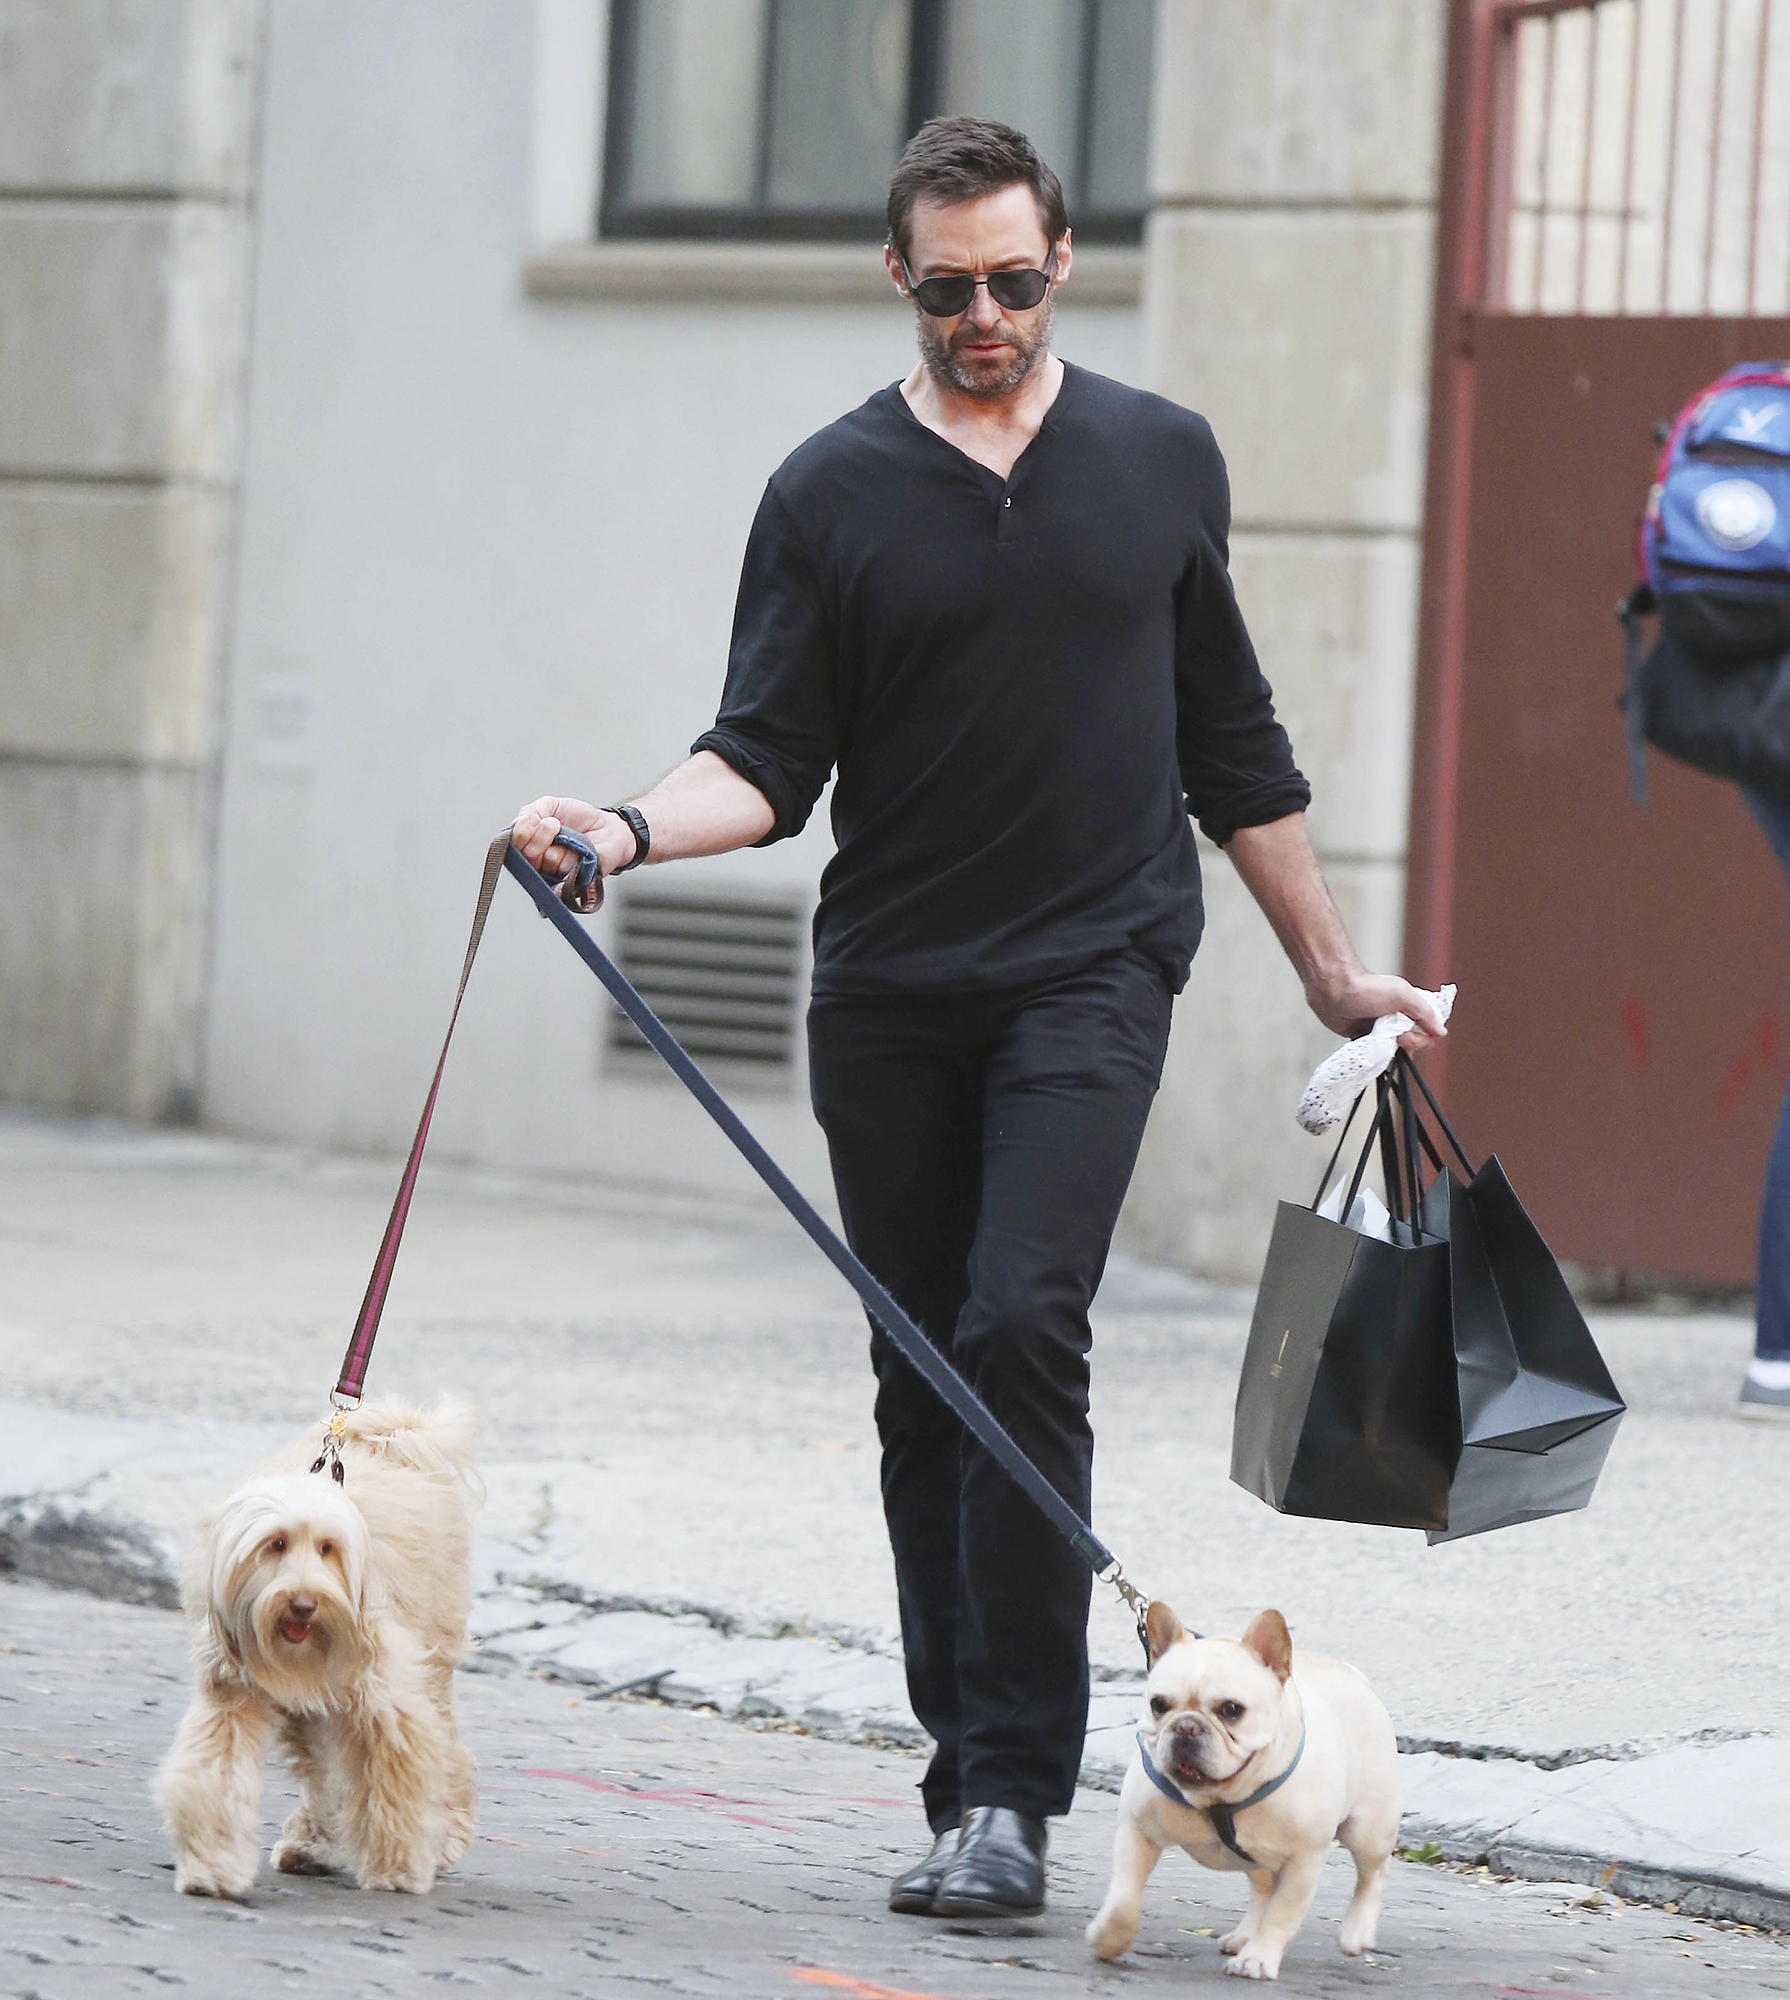 Hugh Jackman Shopping With His Dogs